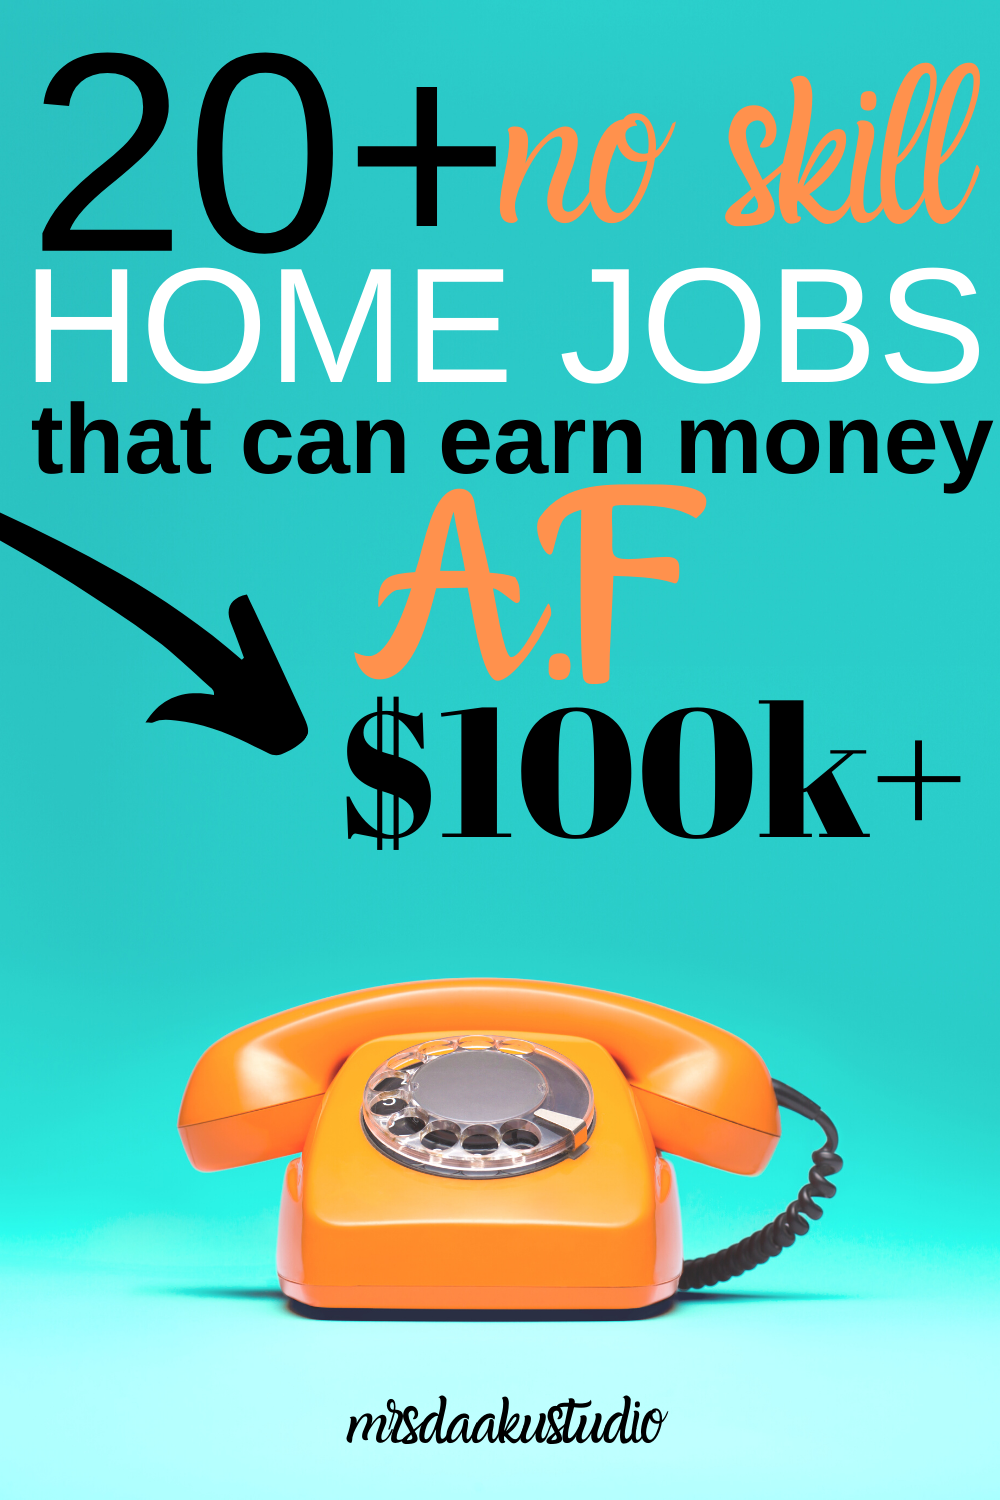 Non Phone Work From Home Jobs – 50+ MEGA LIST!